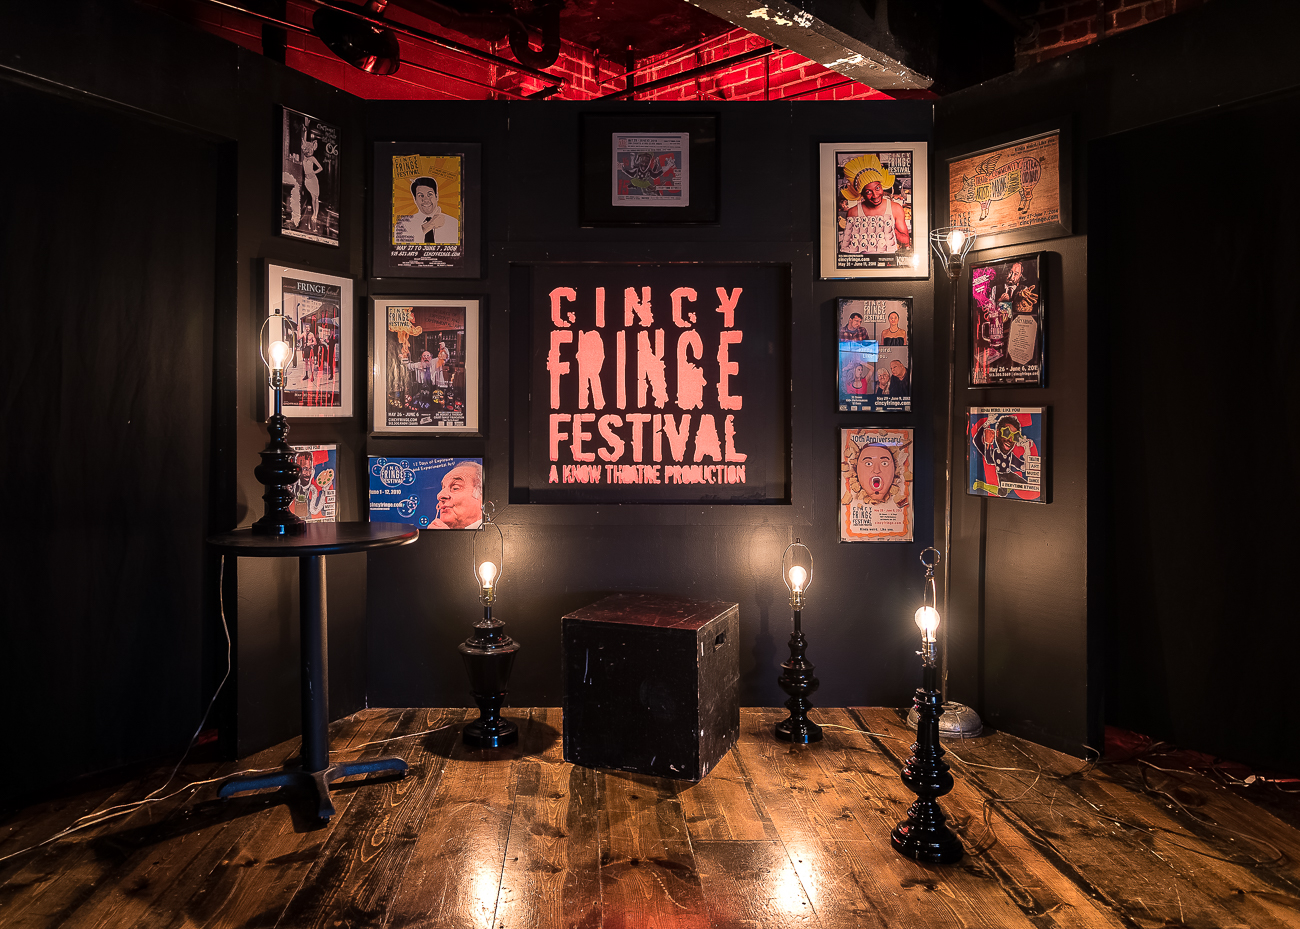 We asked 15 people (artists, patrons, and staff alike) to sum up Cincy Fringe Fest for the upcoming 2018 festival at the Know Theatre. This is what they had to say. / Image: Phil Armstrong, Cincinnati Refined // Published: 5.28.18